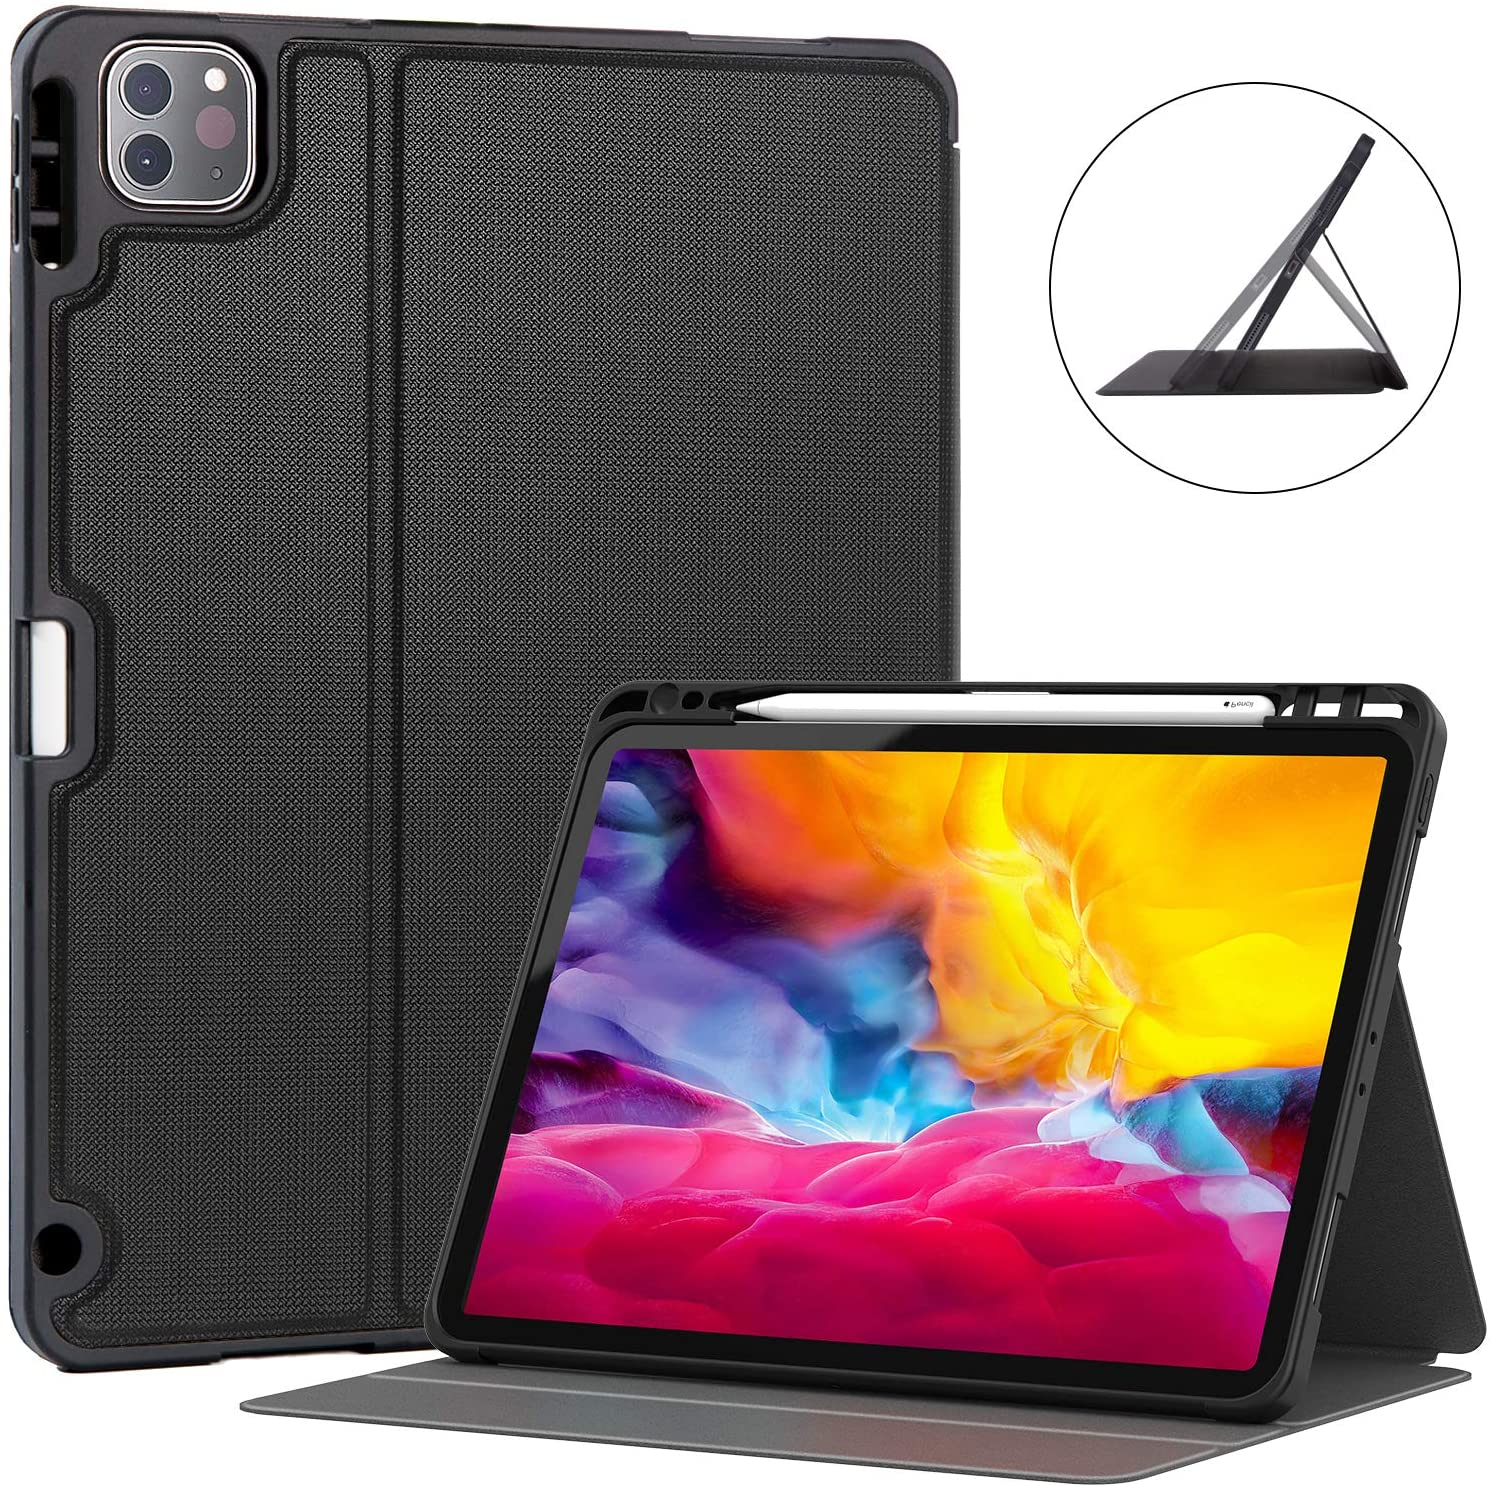 Soke iPad Pro 11 Case 2020 with Pencil Holder,New iPad case 11 inch Lightweight Smart Cover with Soft TPU Back +【Apple Pencil Charging】+Auto Sleep/Wake for iPad pro 2018/2020 (Black)